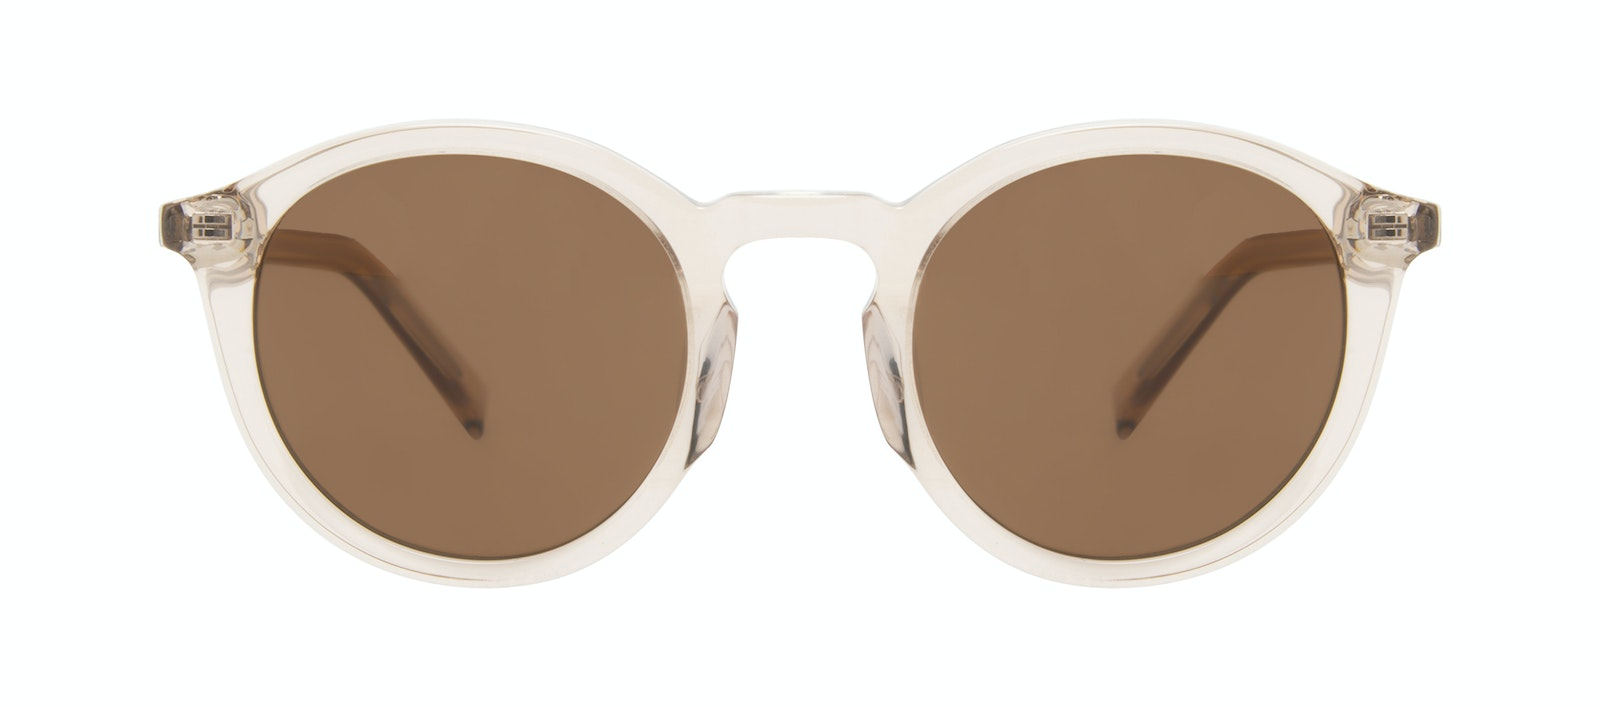 Affordable Fashion Glasses Round Sunglasses Men Thrill Clay Front